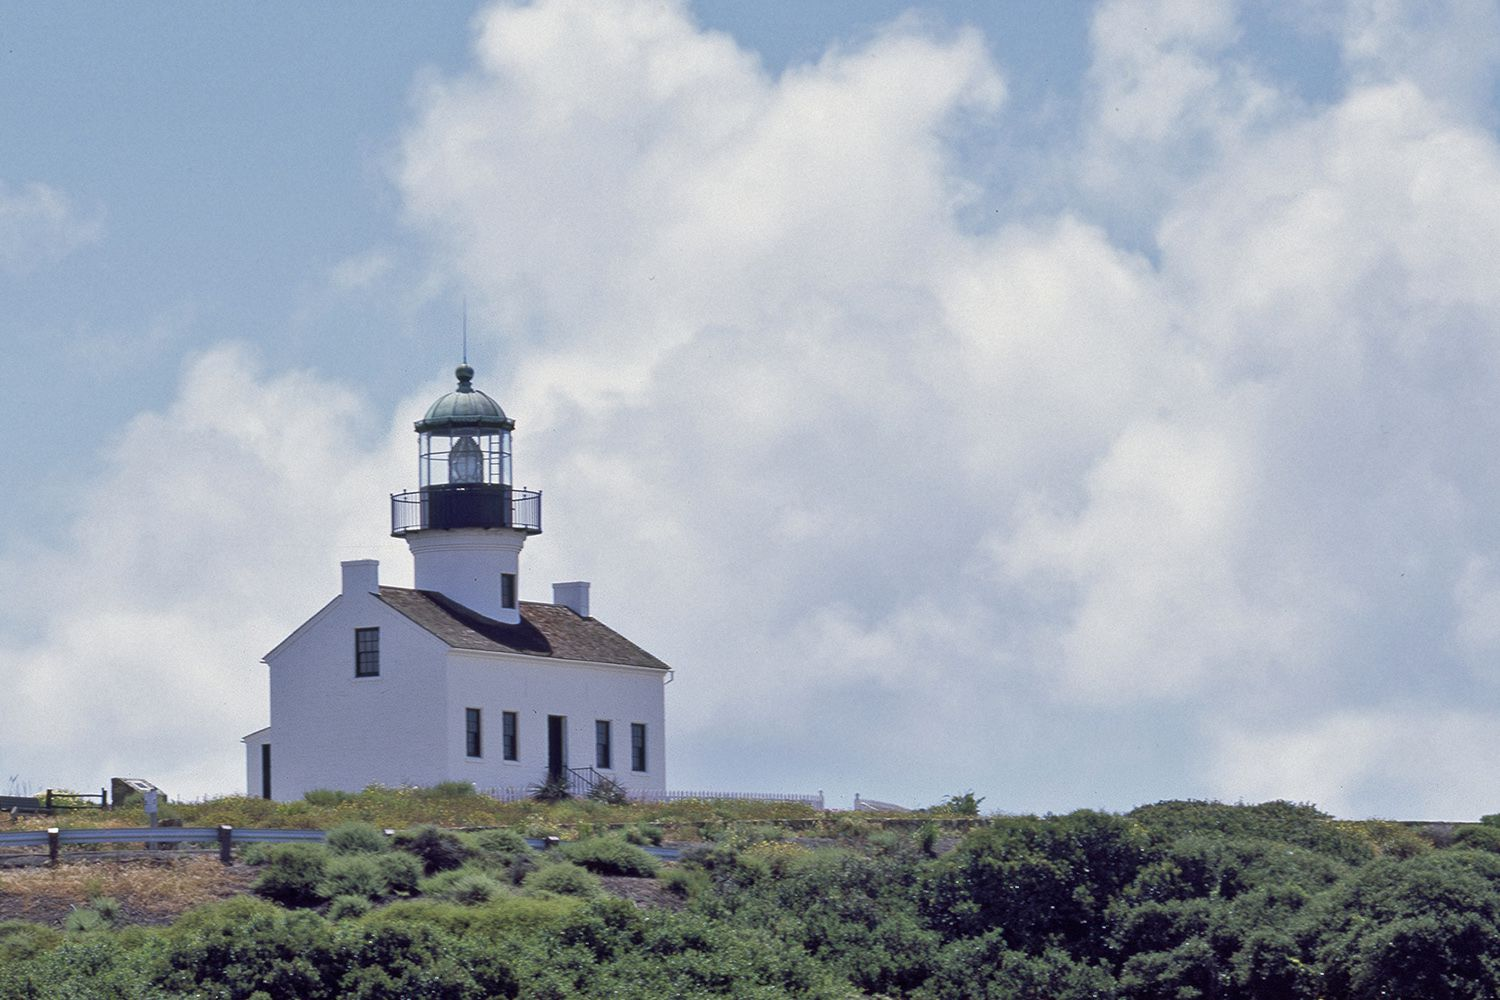 Point loma lighthouse what you need know before you go nvjuhfo Choice Image